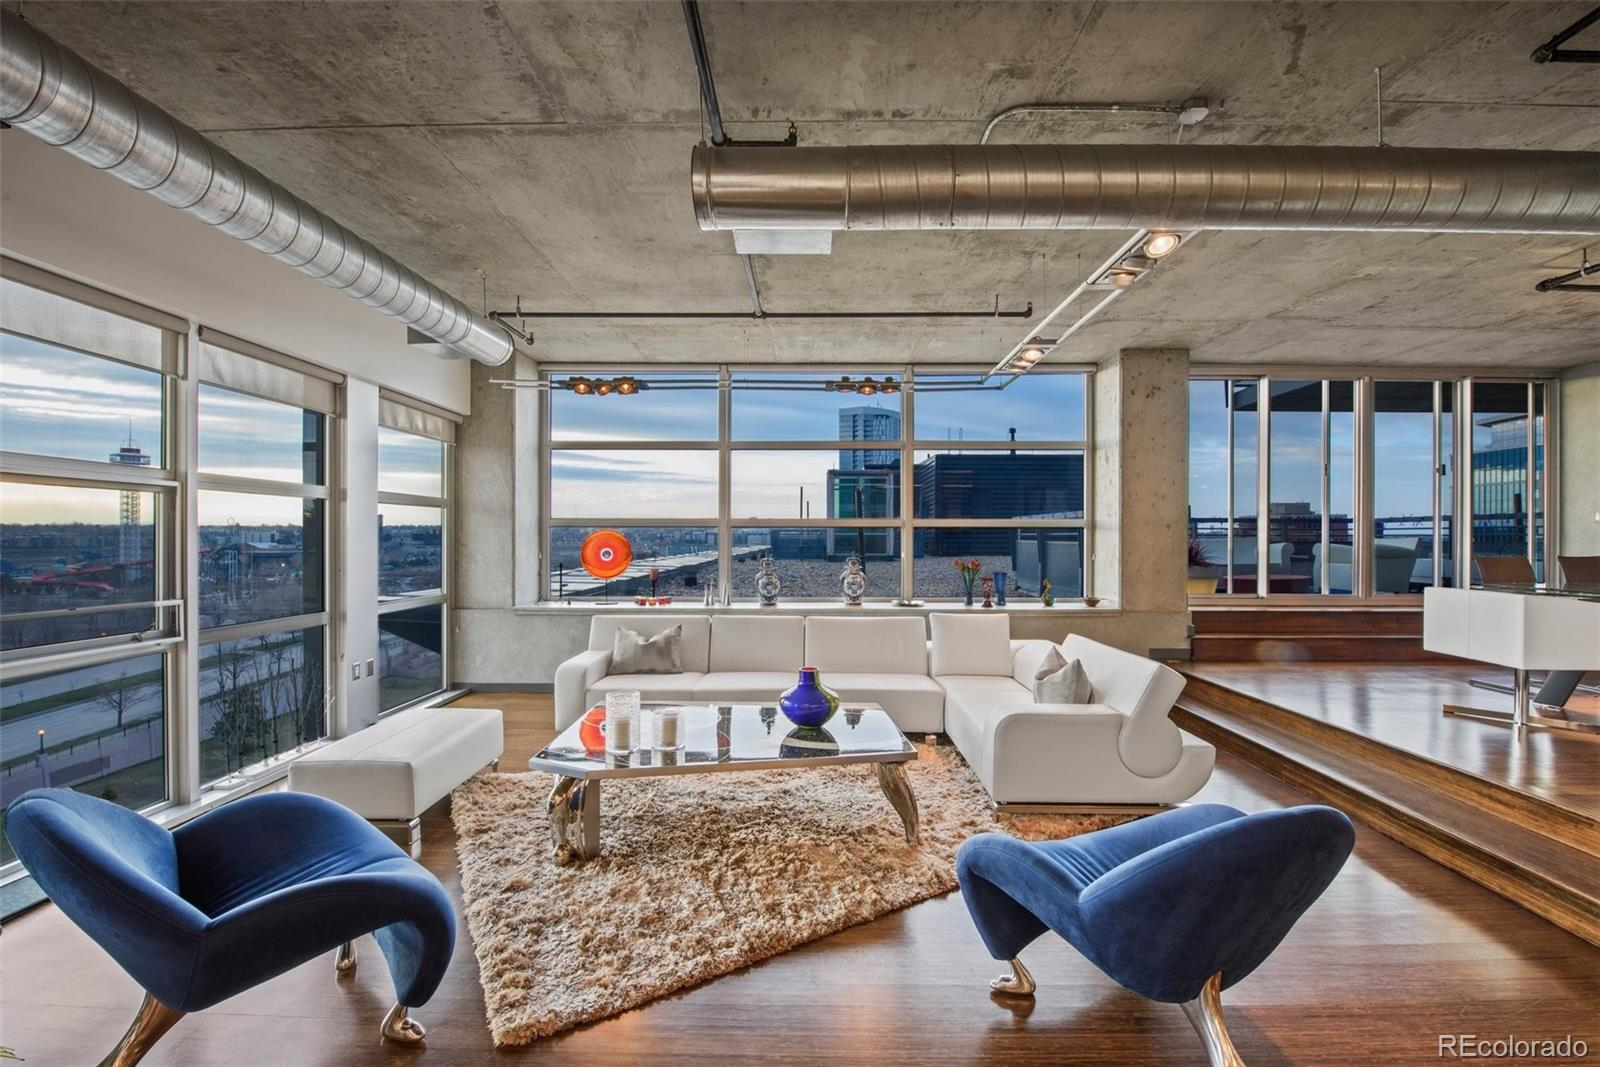 The moment you walk through the front door of this incredible loft in arguably the best building in downtown Denver, your eyes will immediately be drawn to breathtaking views of The mountains and Six Flags Elitch Gardens (soon to be River Mile)  outside of the floor to ceiling windows that surround the entire home. The expansive kitchen with large island and wide open living and dining area is the perfect space to entertain guests! Large outdoor patio and separate balcony with gas-line for a grill that over looks a park, the Cherry Creek bike and pedestrian path and the Pepsi Center. The bedrooms are on opposite sides of the 2401 sq feet of living space offering plenty of privacy for owner and guests. The master suite is separated from the rest of the home by a partial rotating TV wall to allow you to watch a show or a